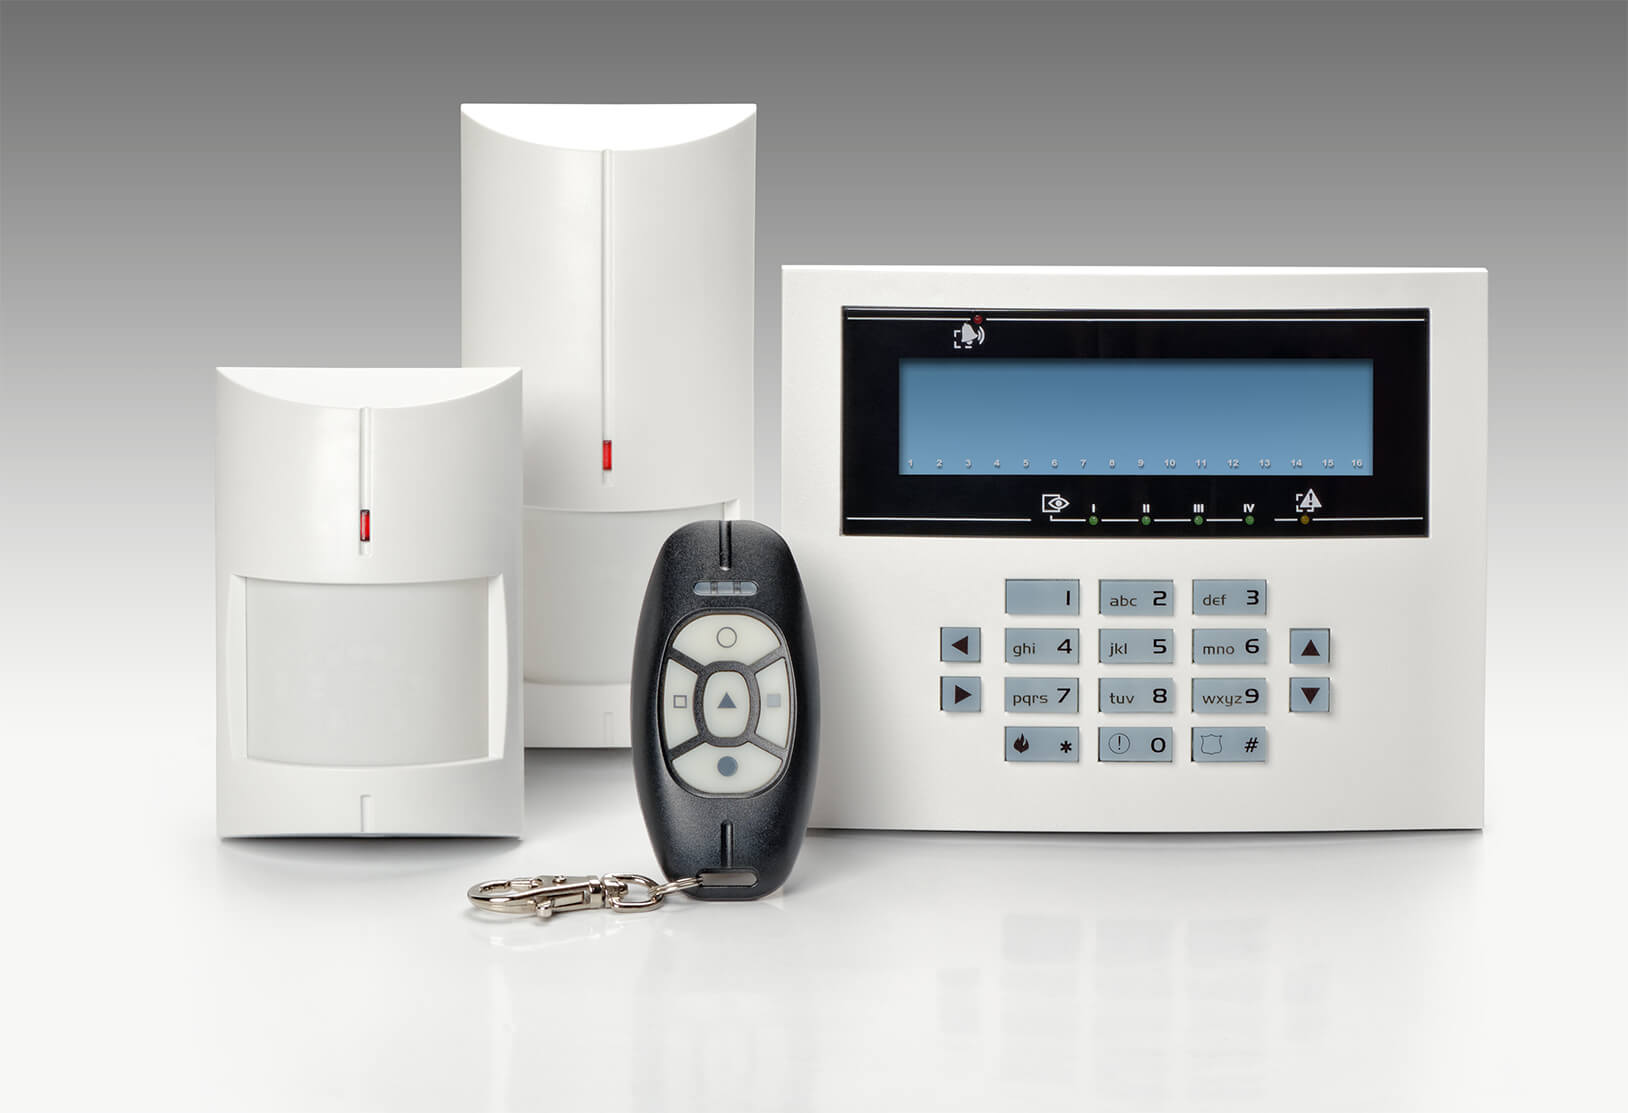 Business & Residential NSI / NACOSS Approved Burglar Alarms In Crystal Palace SE19 - Local Crystal Palace SE19 security company.Call 02078872244 - Dedicated to Safety & Security. Companies, shops and homes ..